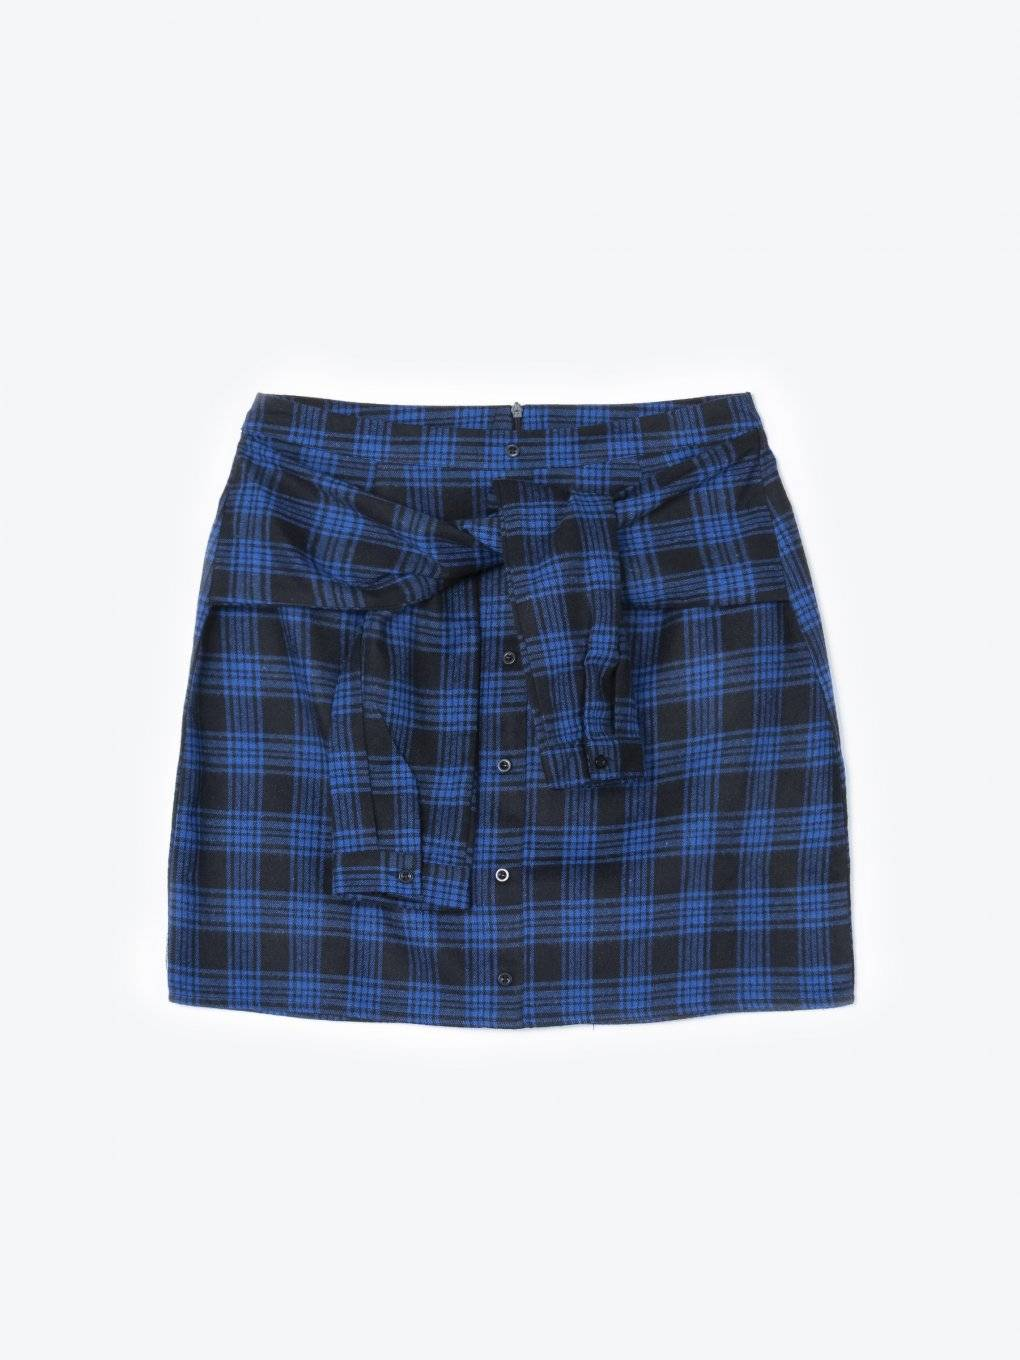 Plaid button down skirt with faux sleeve knot